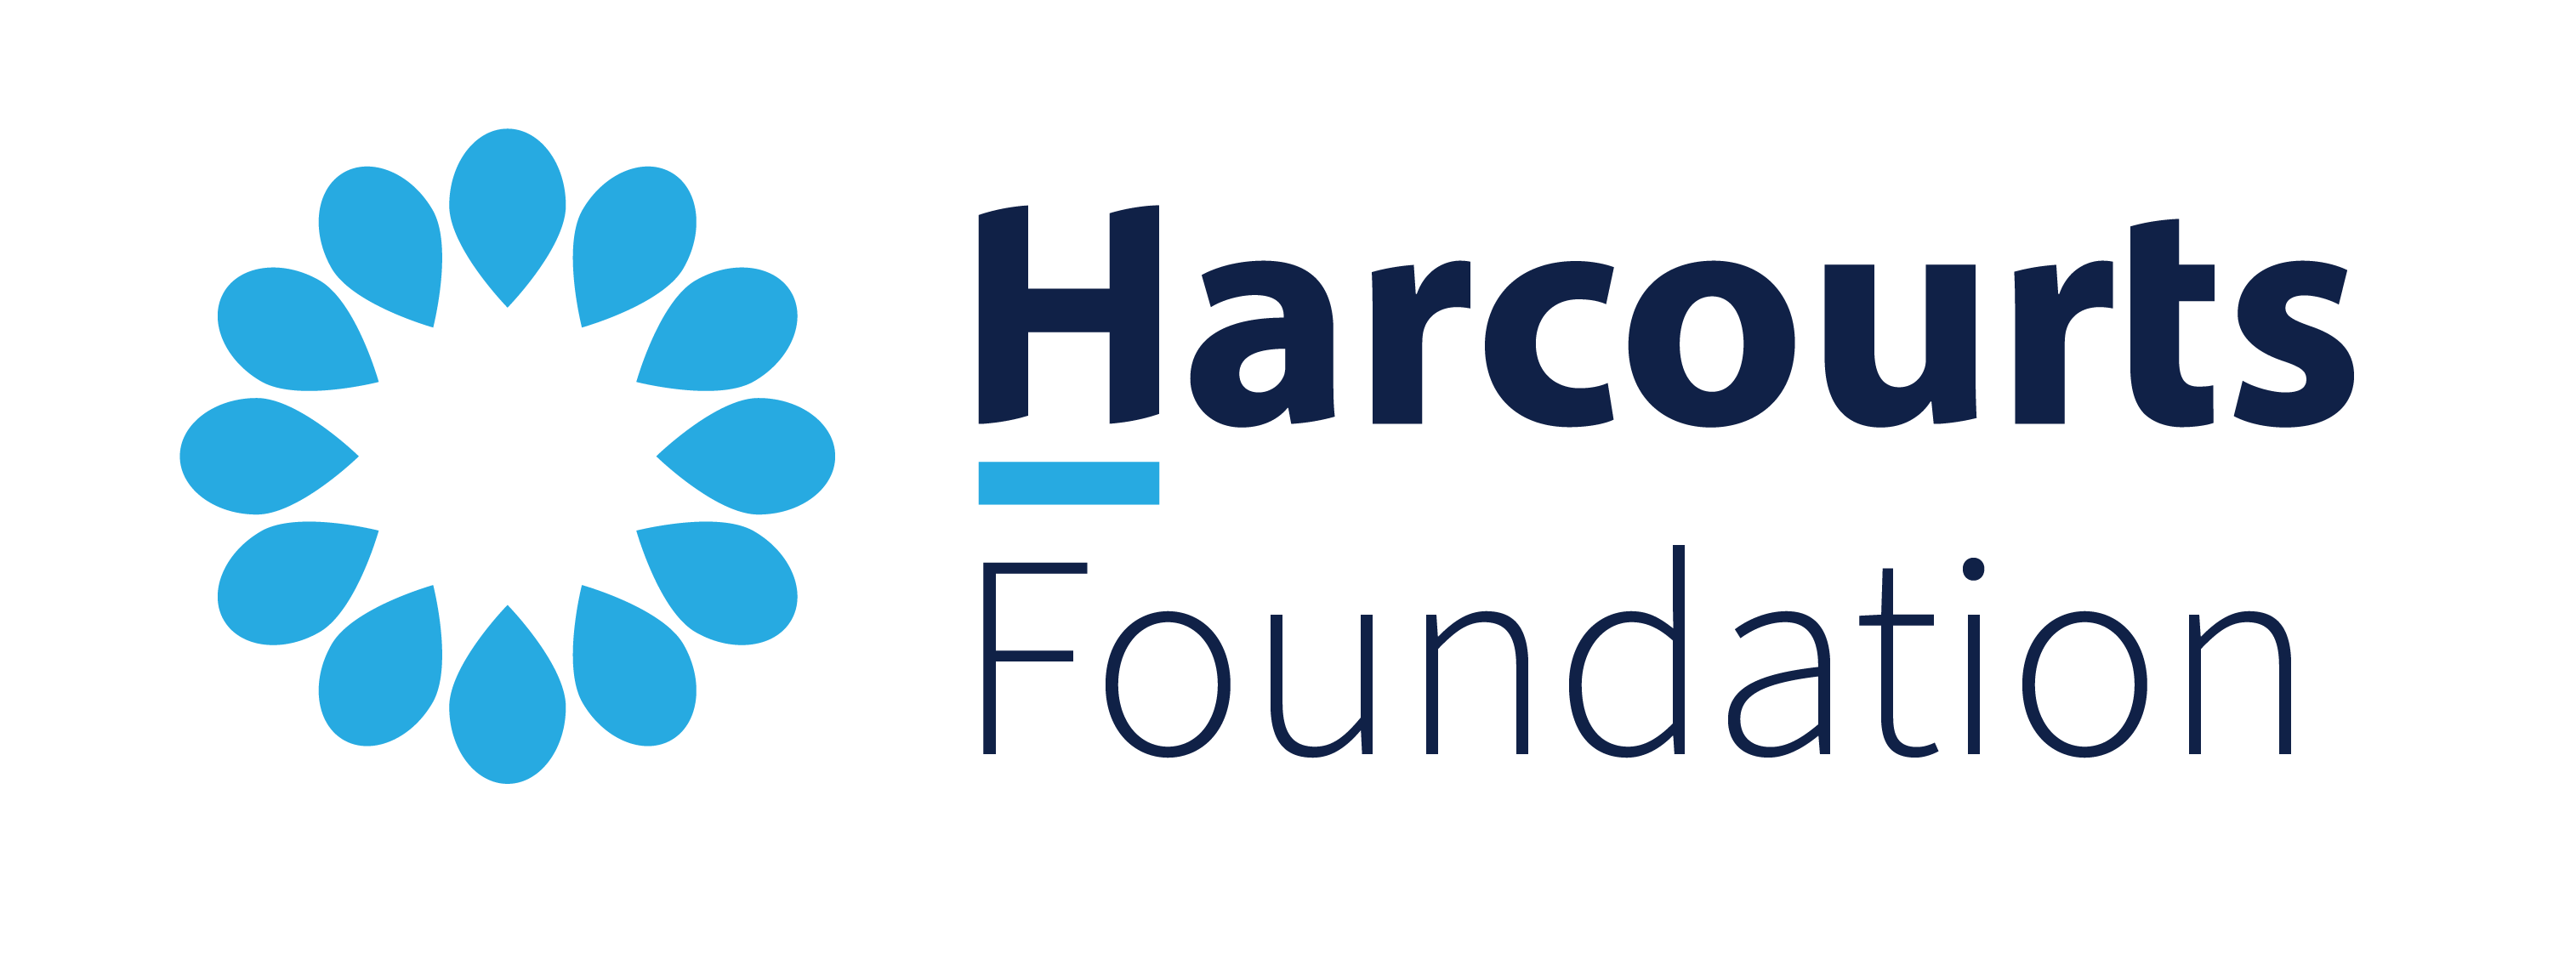 Harcourts Foundation - To provide support that helps, grows and enriches our communities.